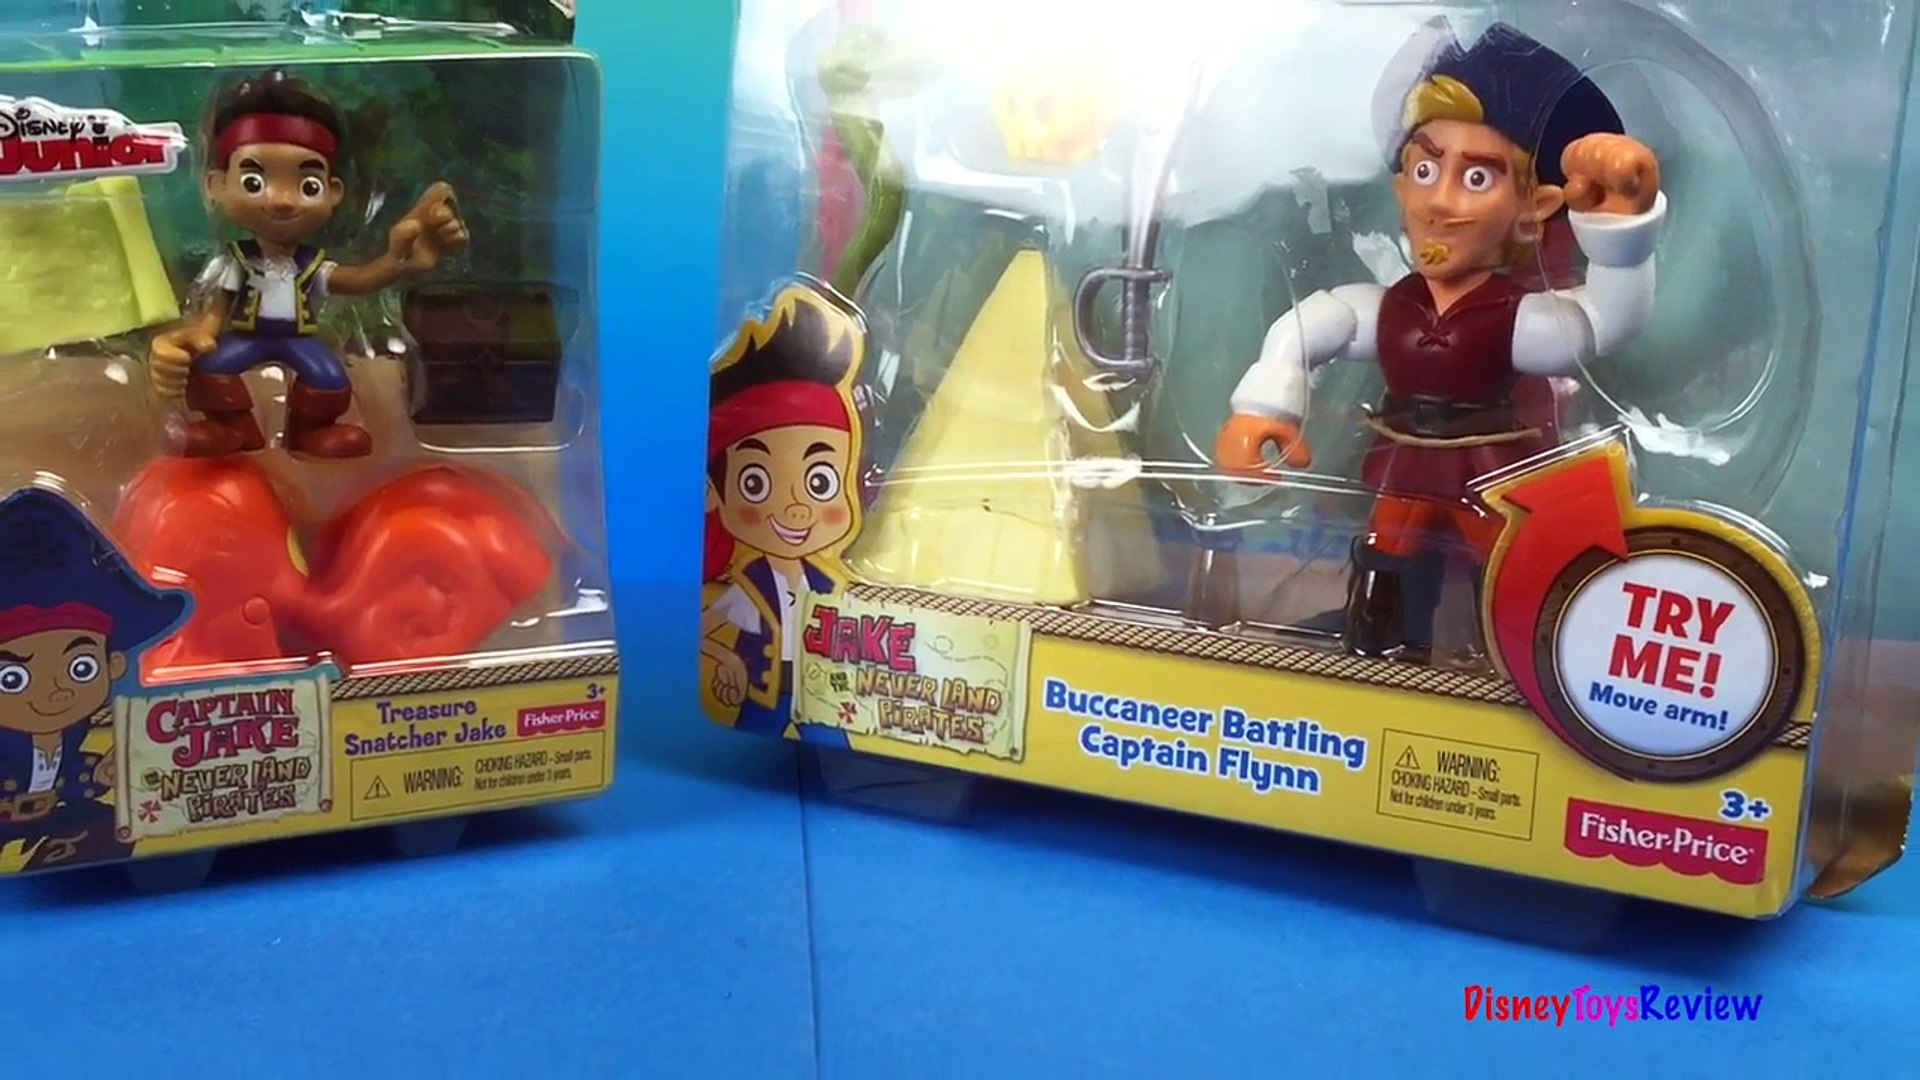 Le capitaine jake and the neverland pirates-créature aventure issy-CGJ68-new